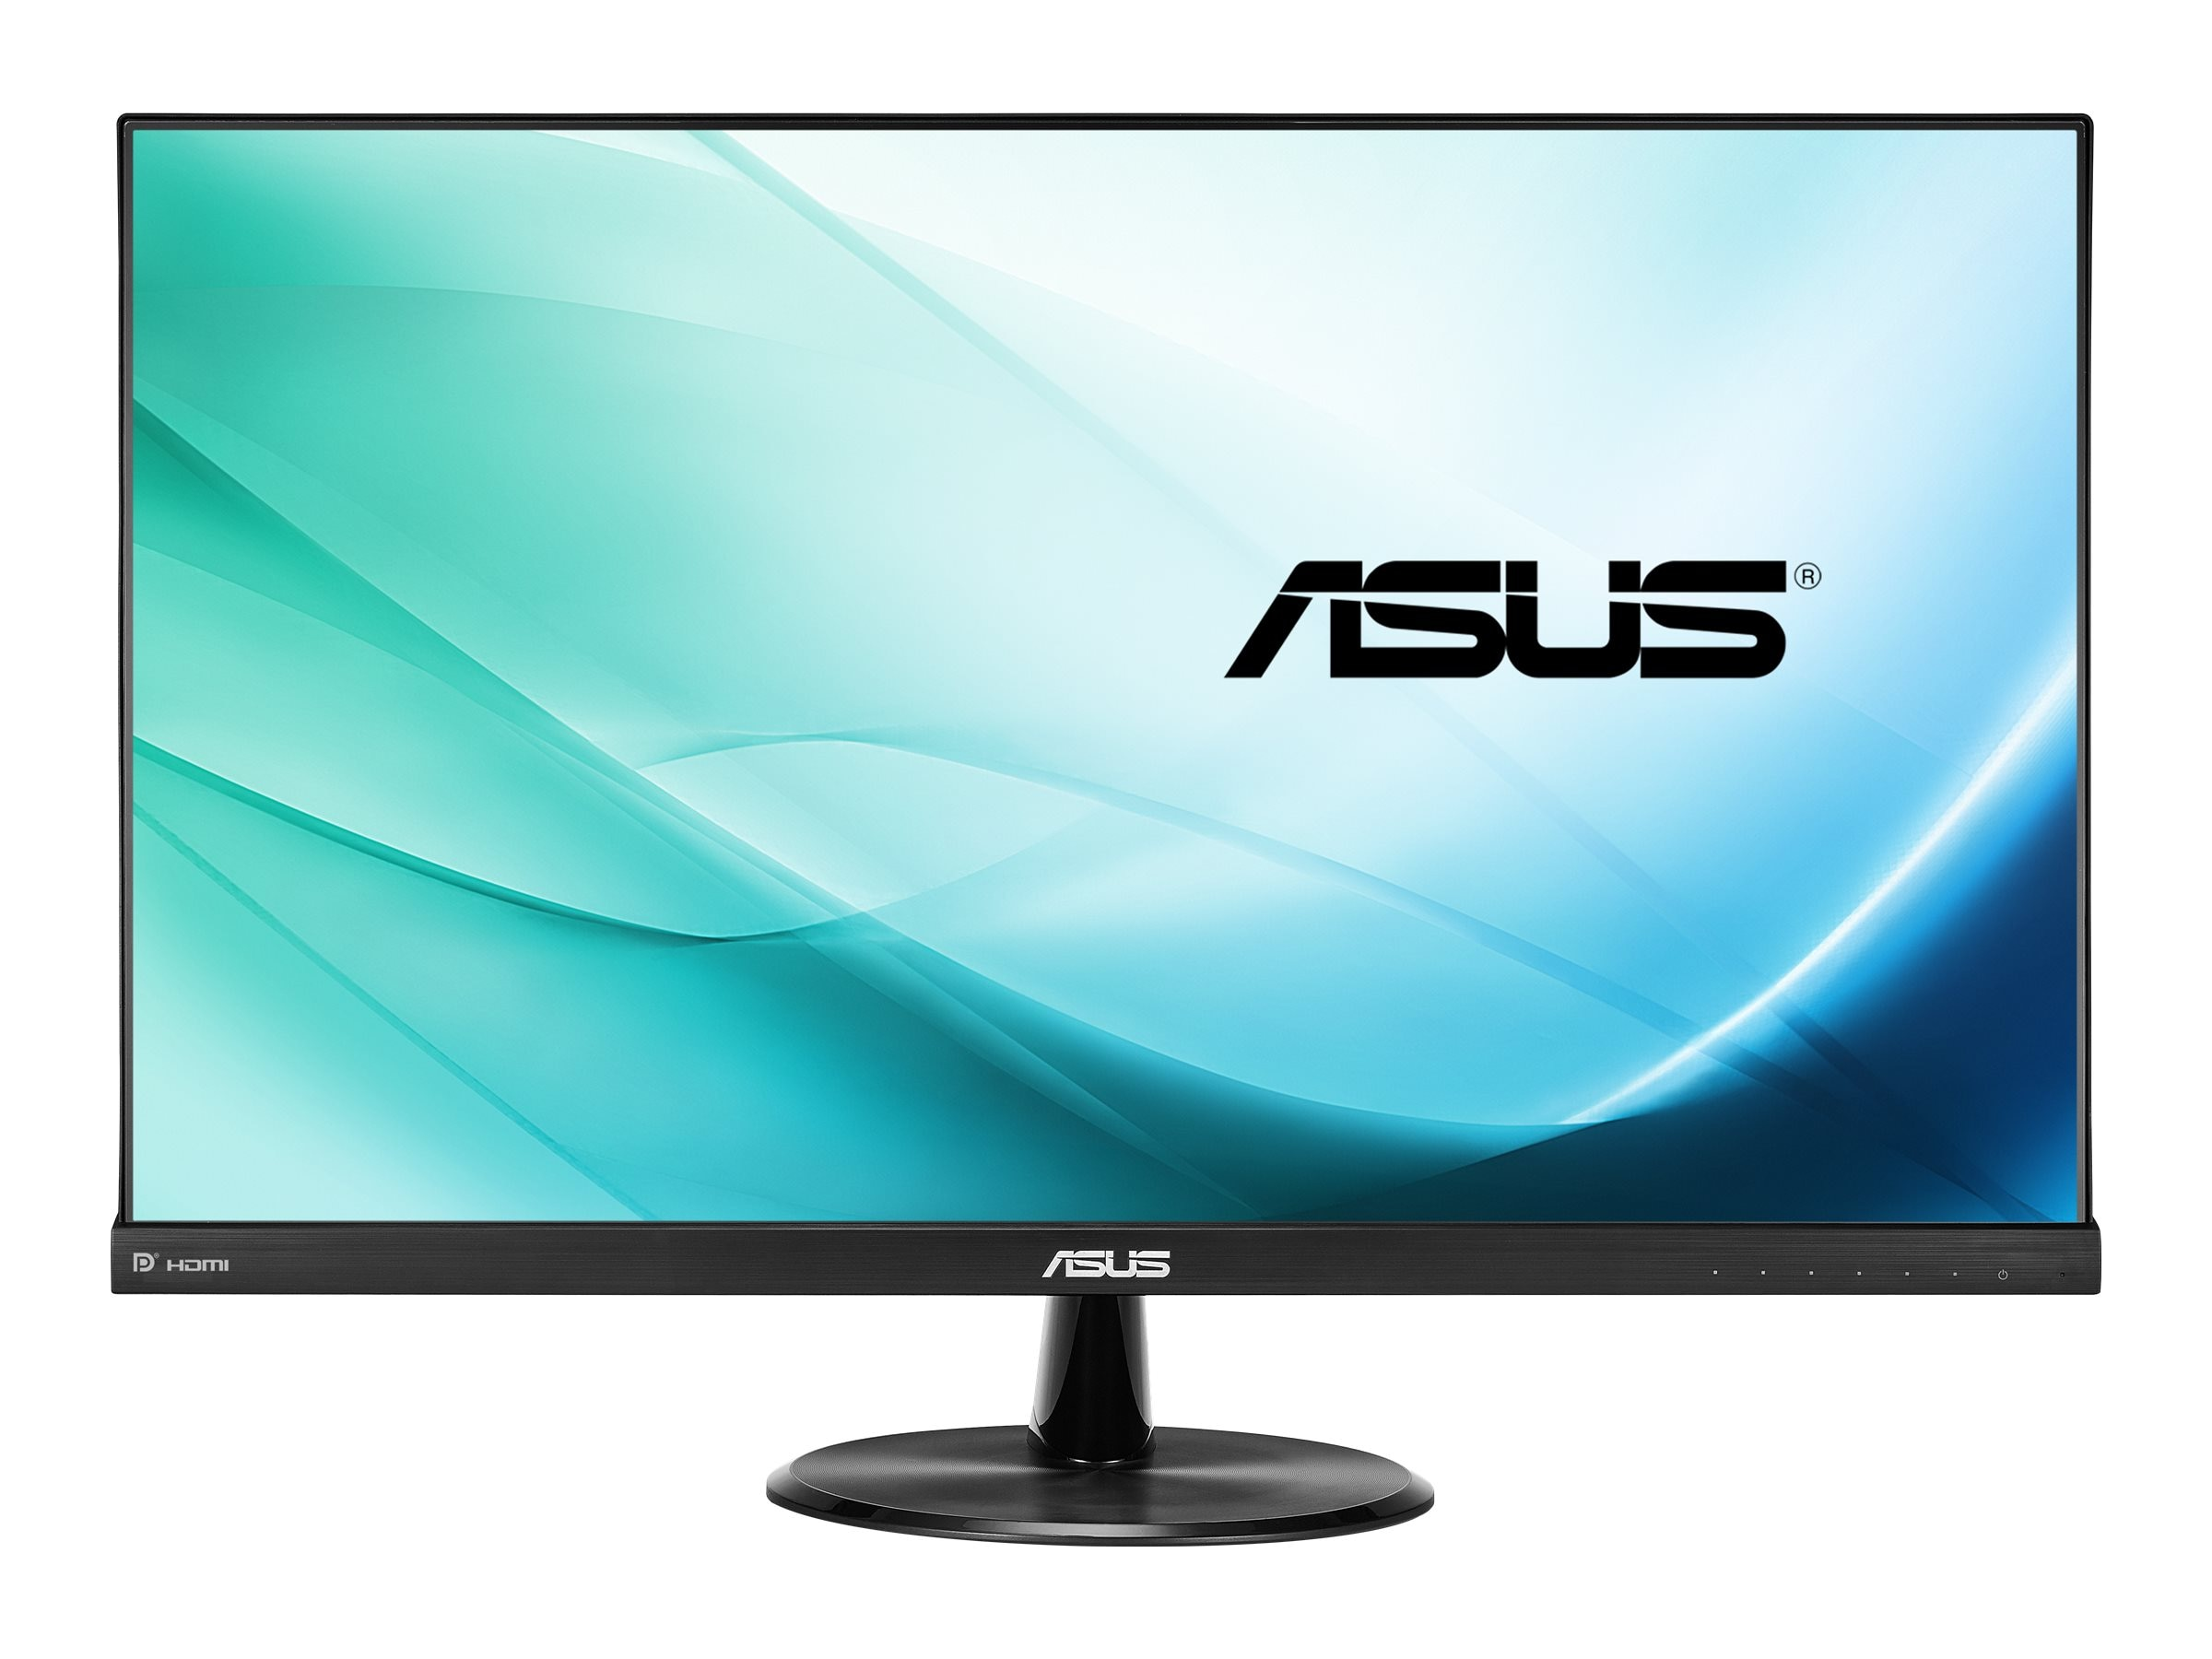 Asus 27 VP279Q-P Full HD LED-LCD Monitor, Black, VP279Q-P